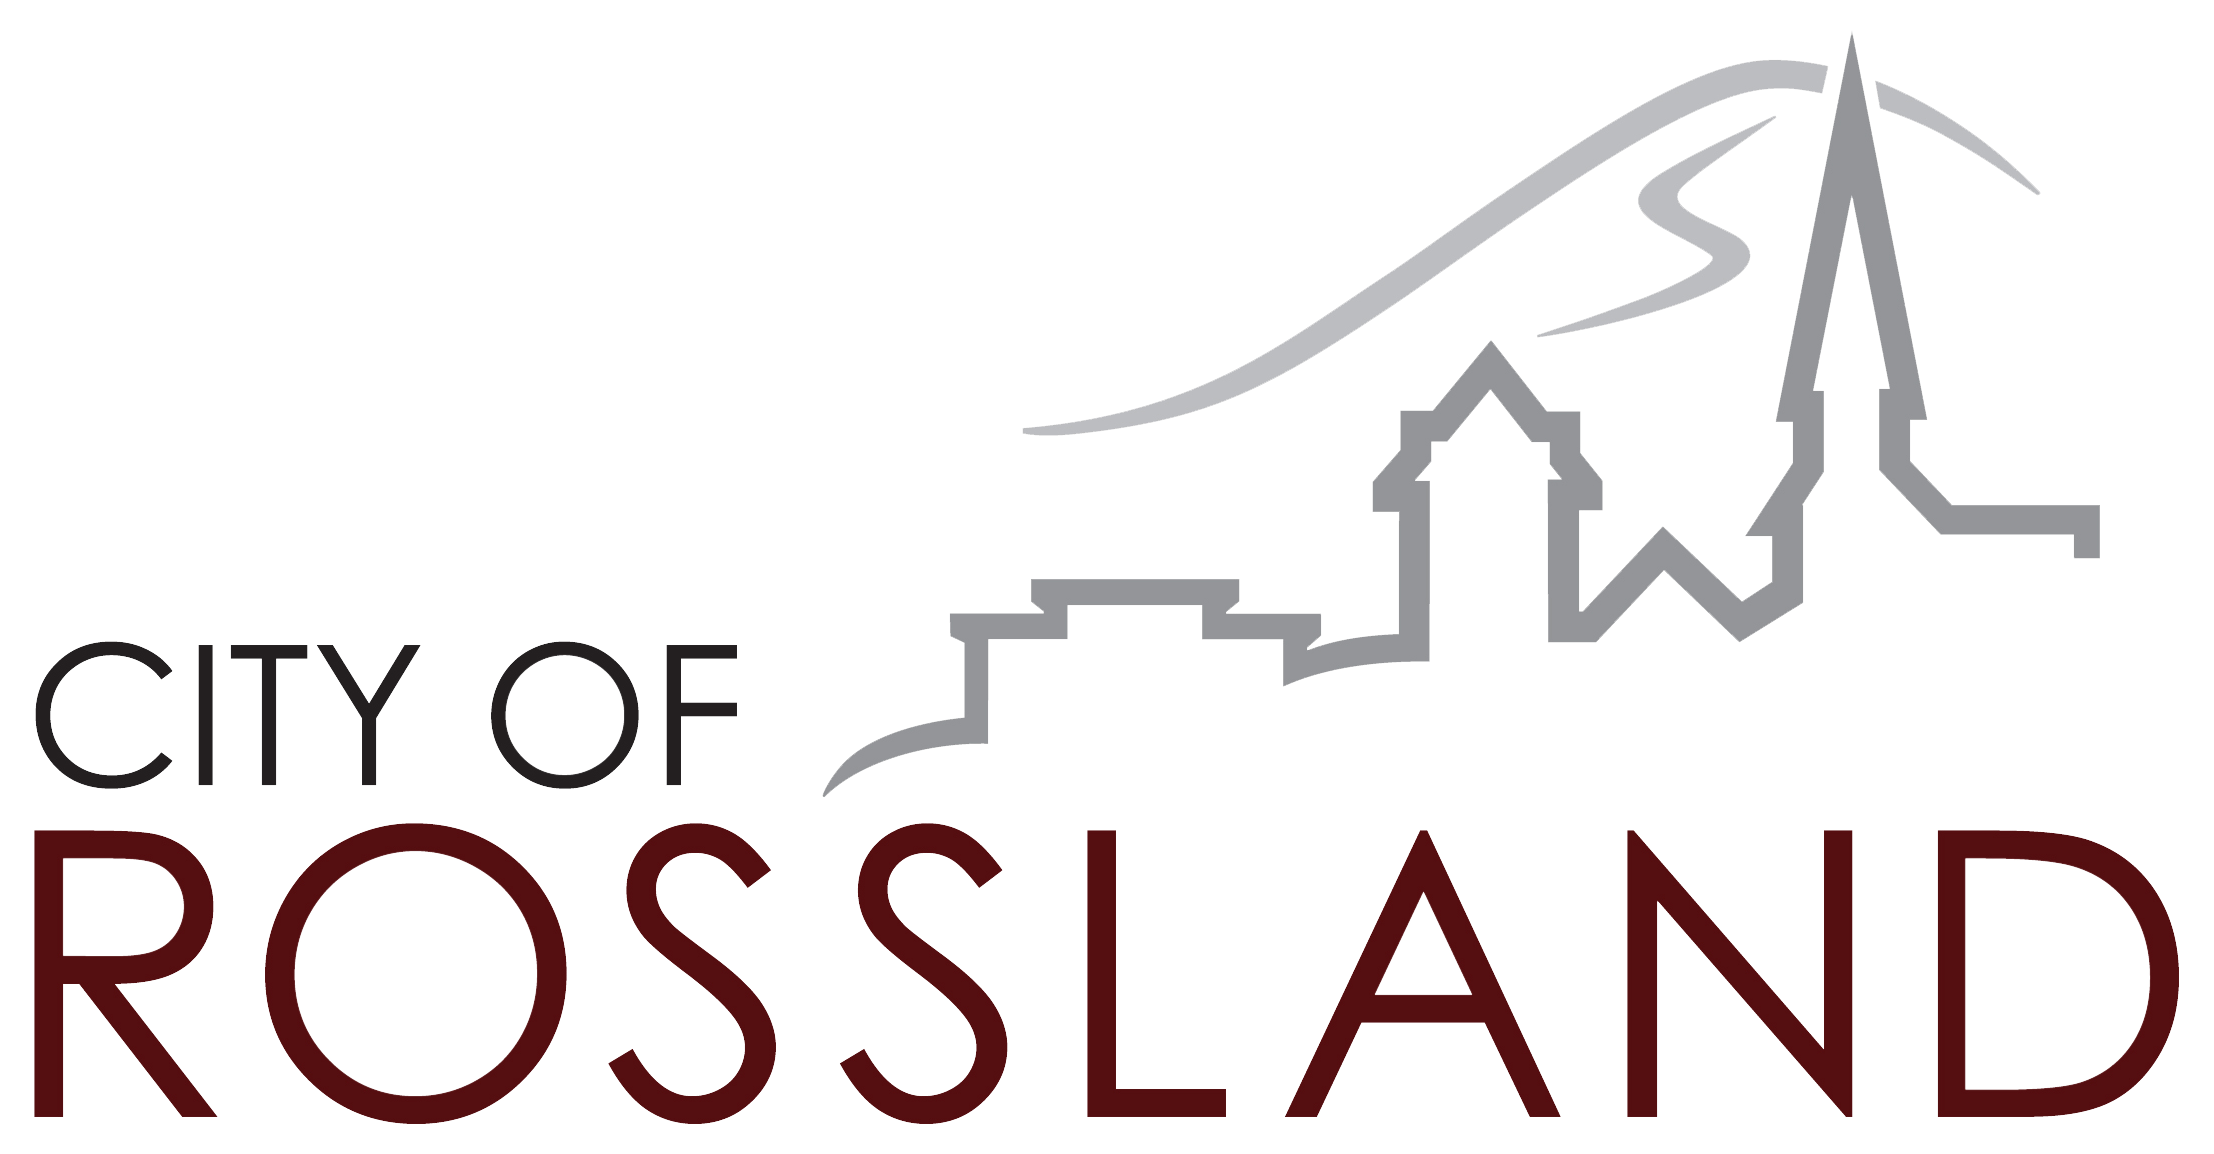 City of Rossland